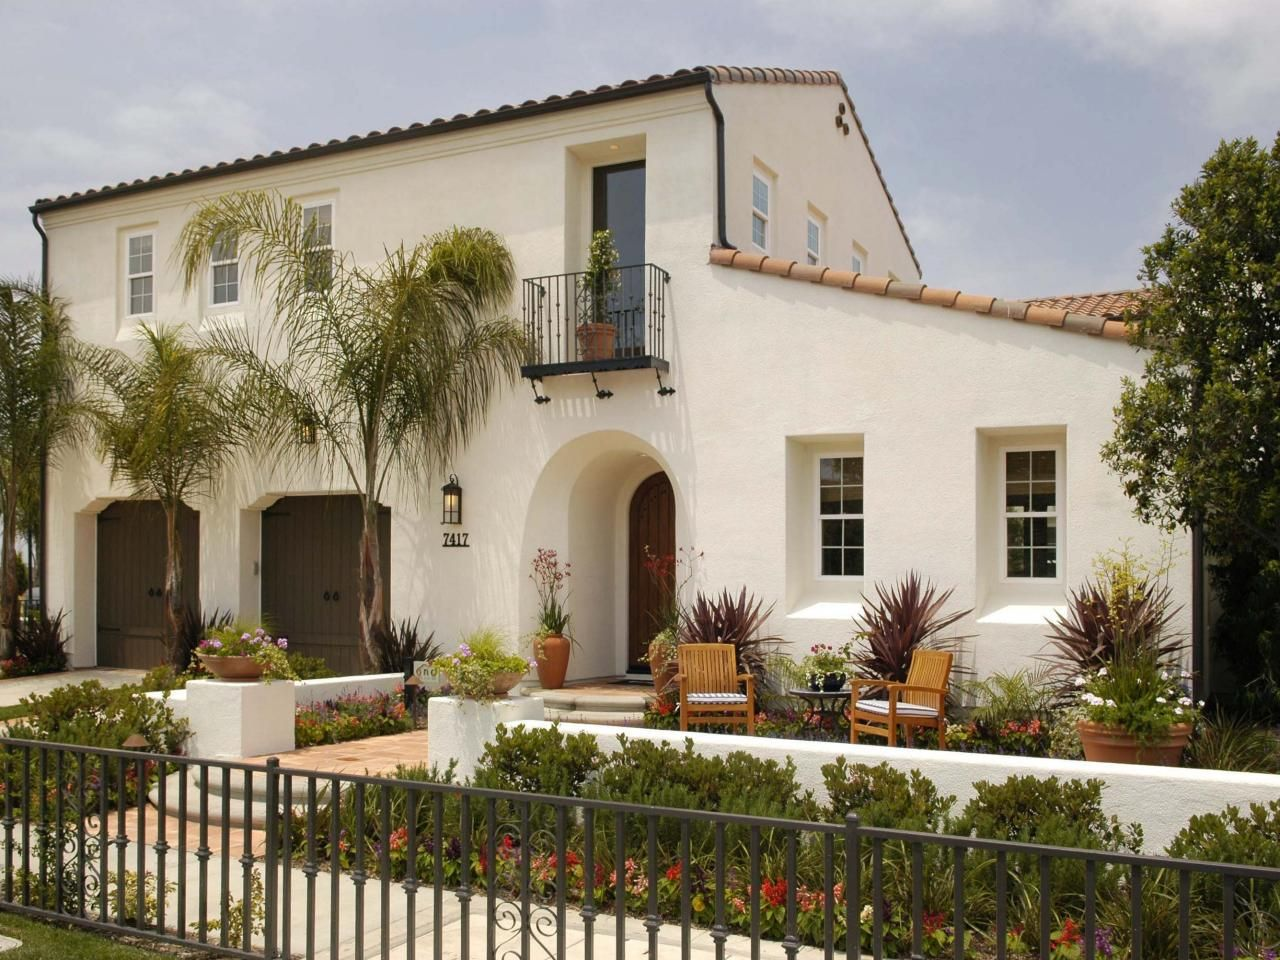 Mediterranean style home designers in az - Modern Spanish Residential Design Remodeling Exterior Design With Cot French Door Blue Door Wall Pinterest Exterior Paint Combinations